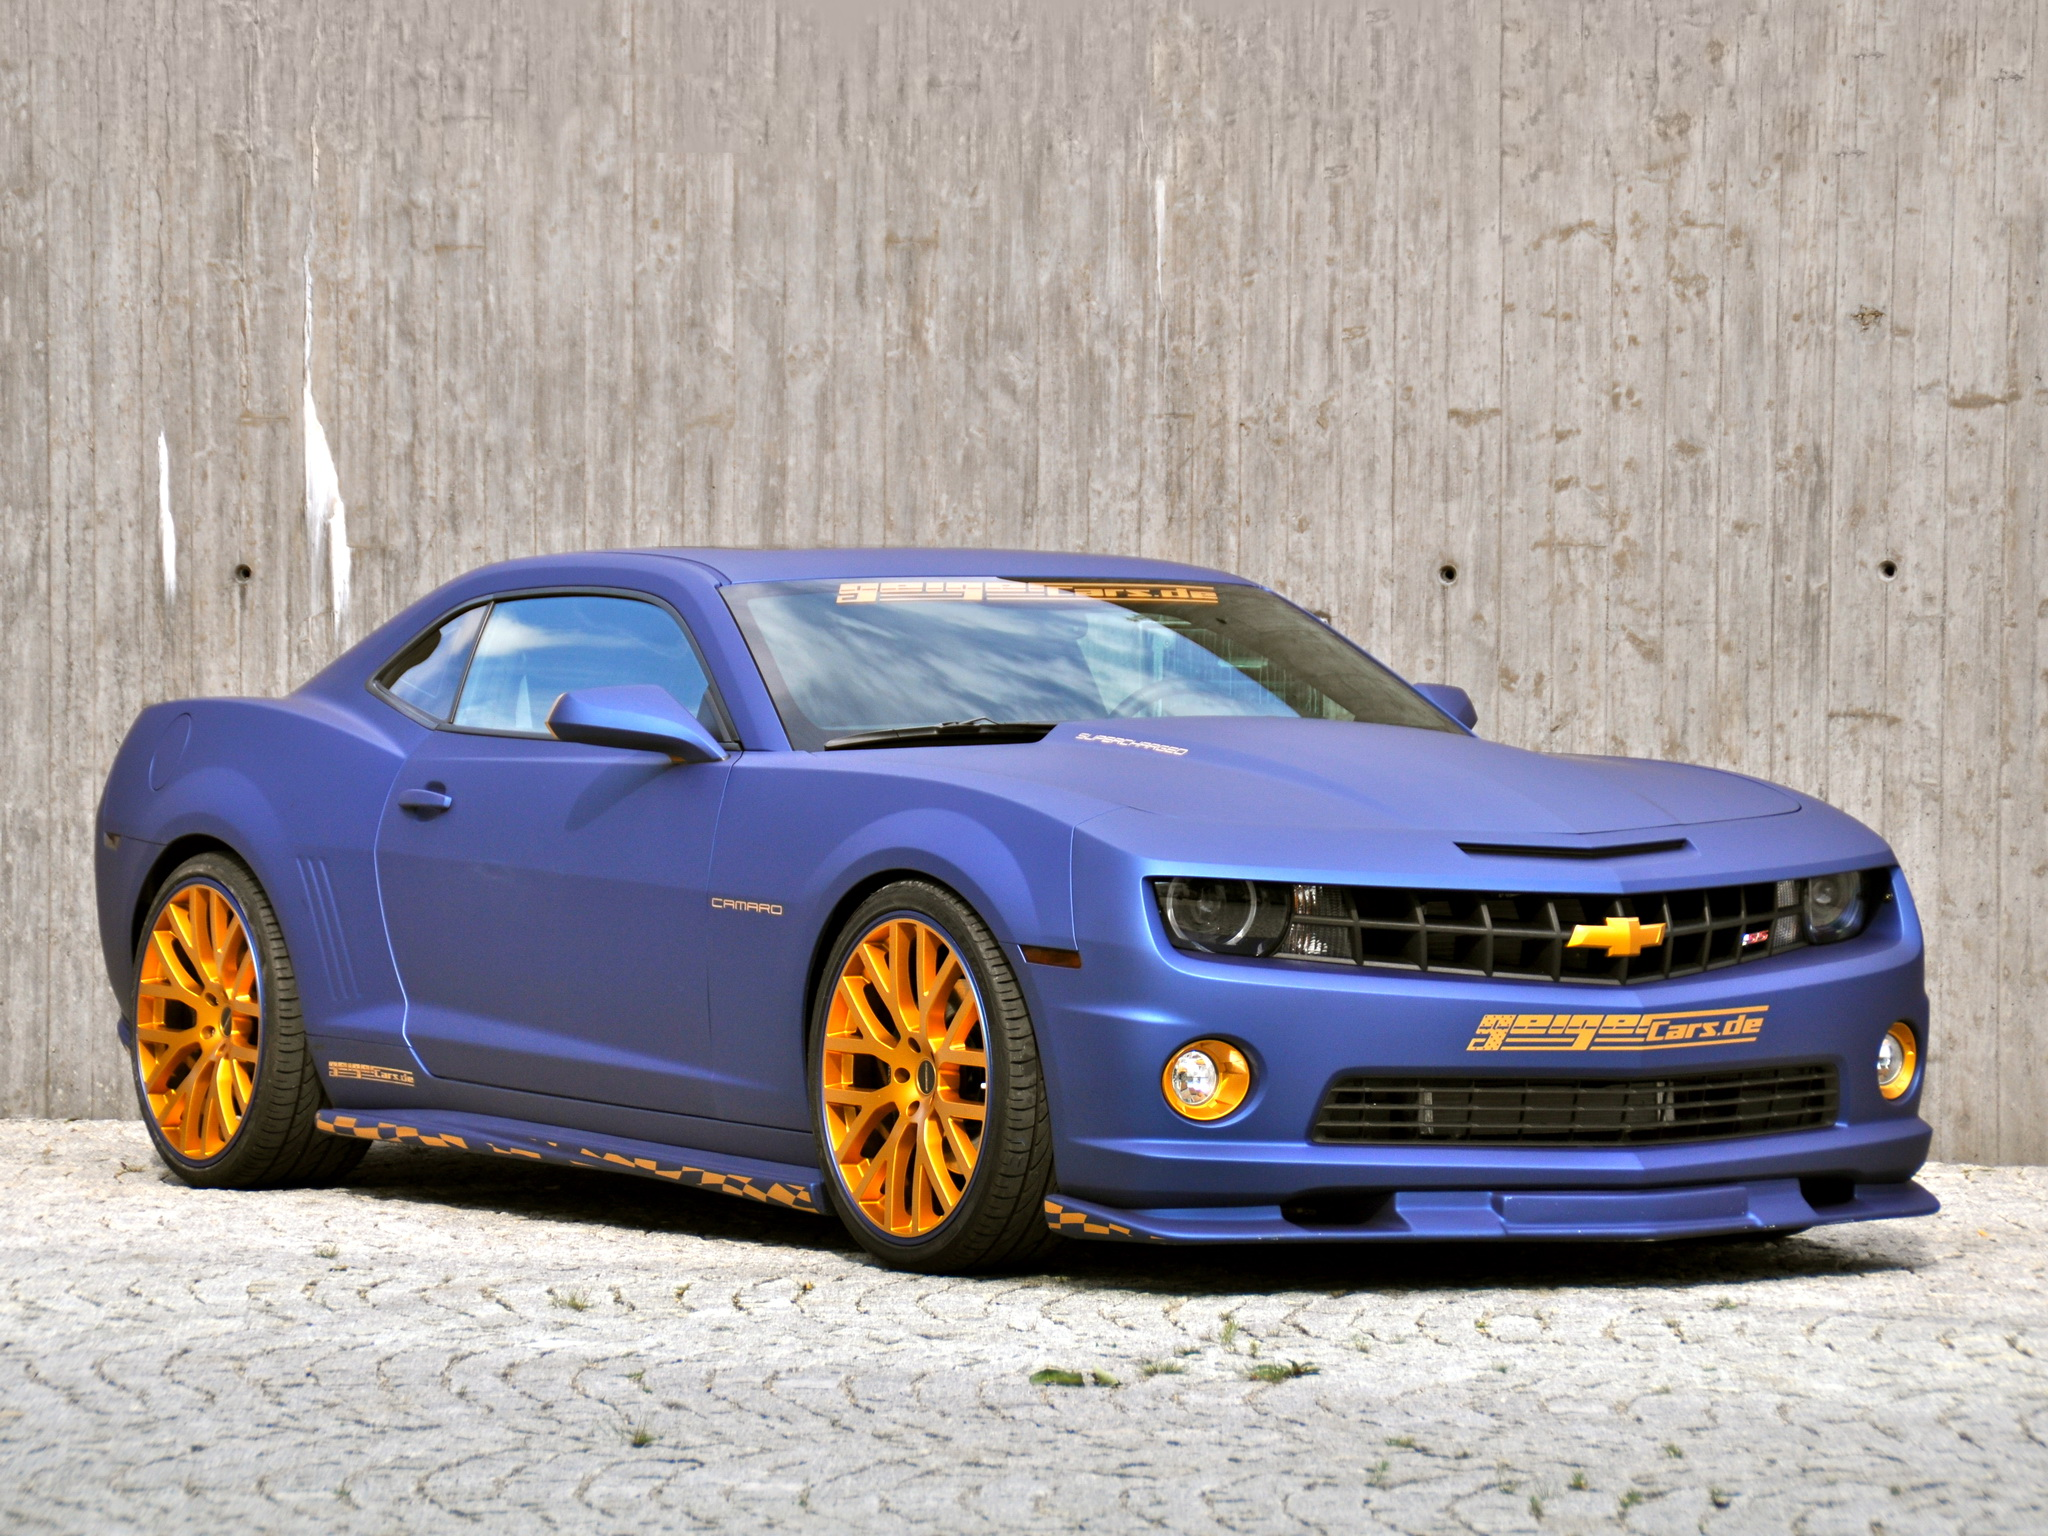 2011 geiger chevrolet camaro ss muscle tuning s s wallpaper 2048x1536 166057 wallpaperup. Black Bedroom Furniture Sets. Home Design Ideas